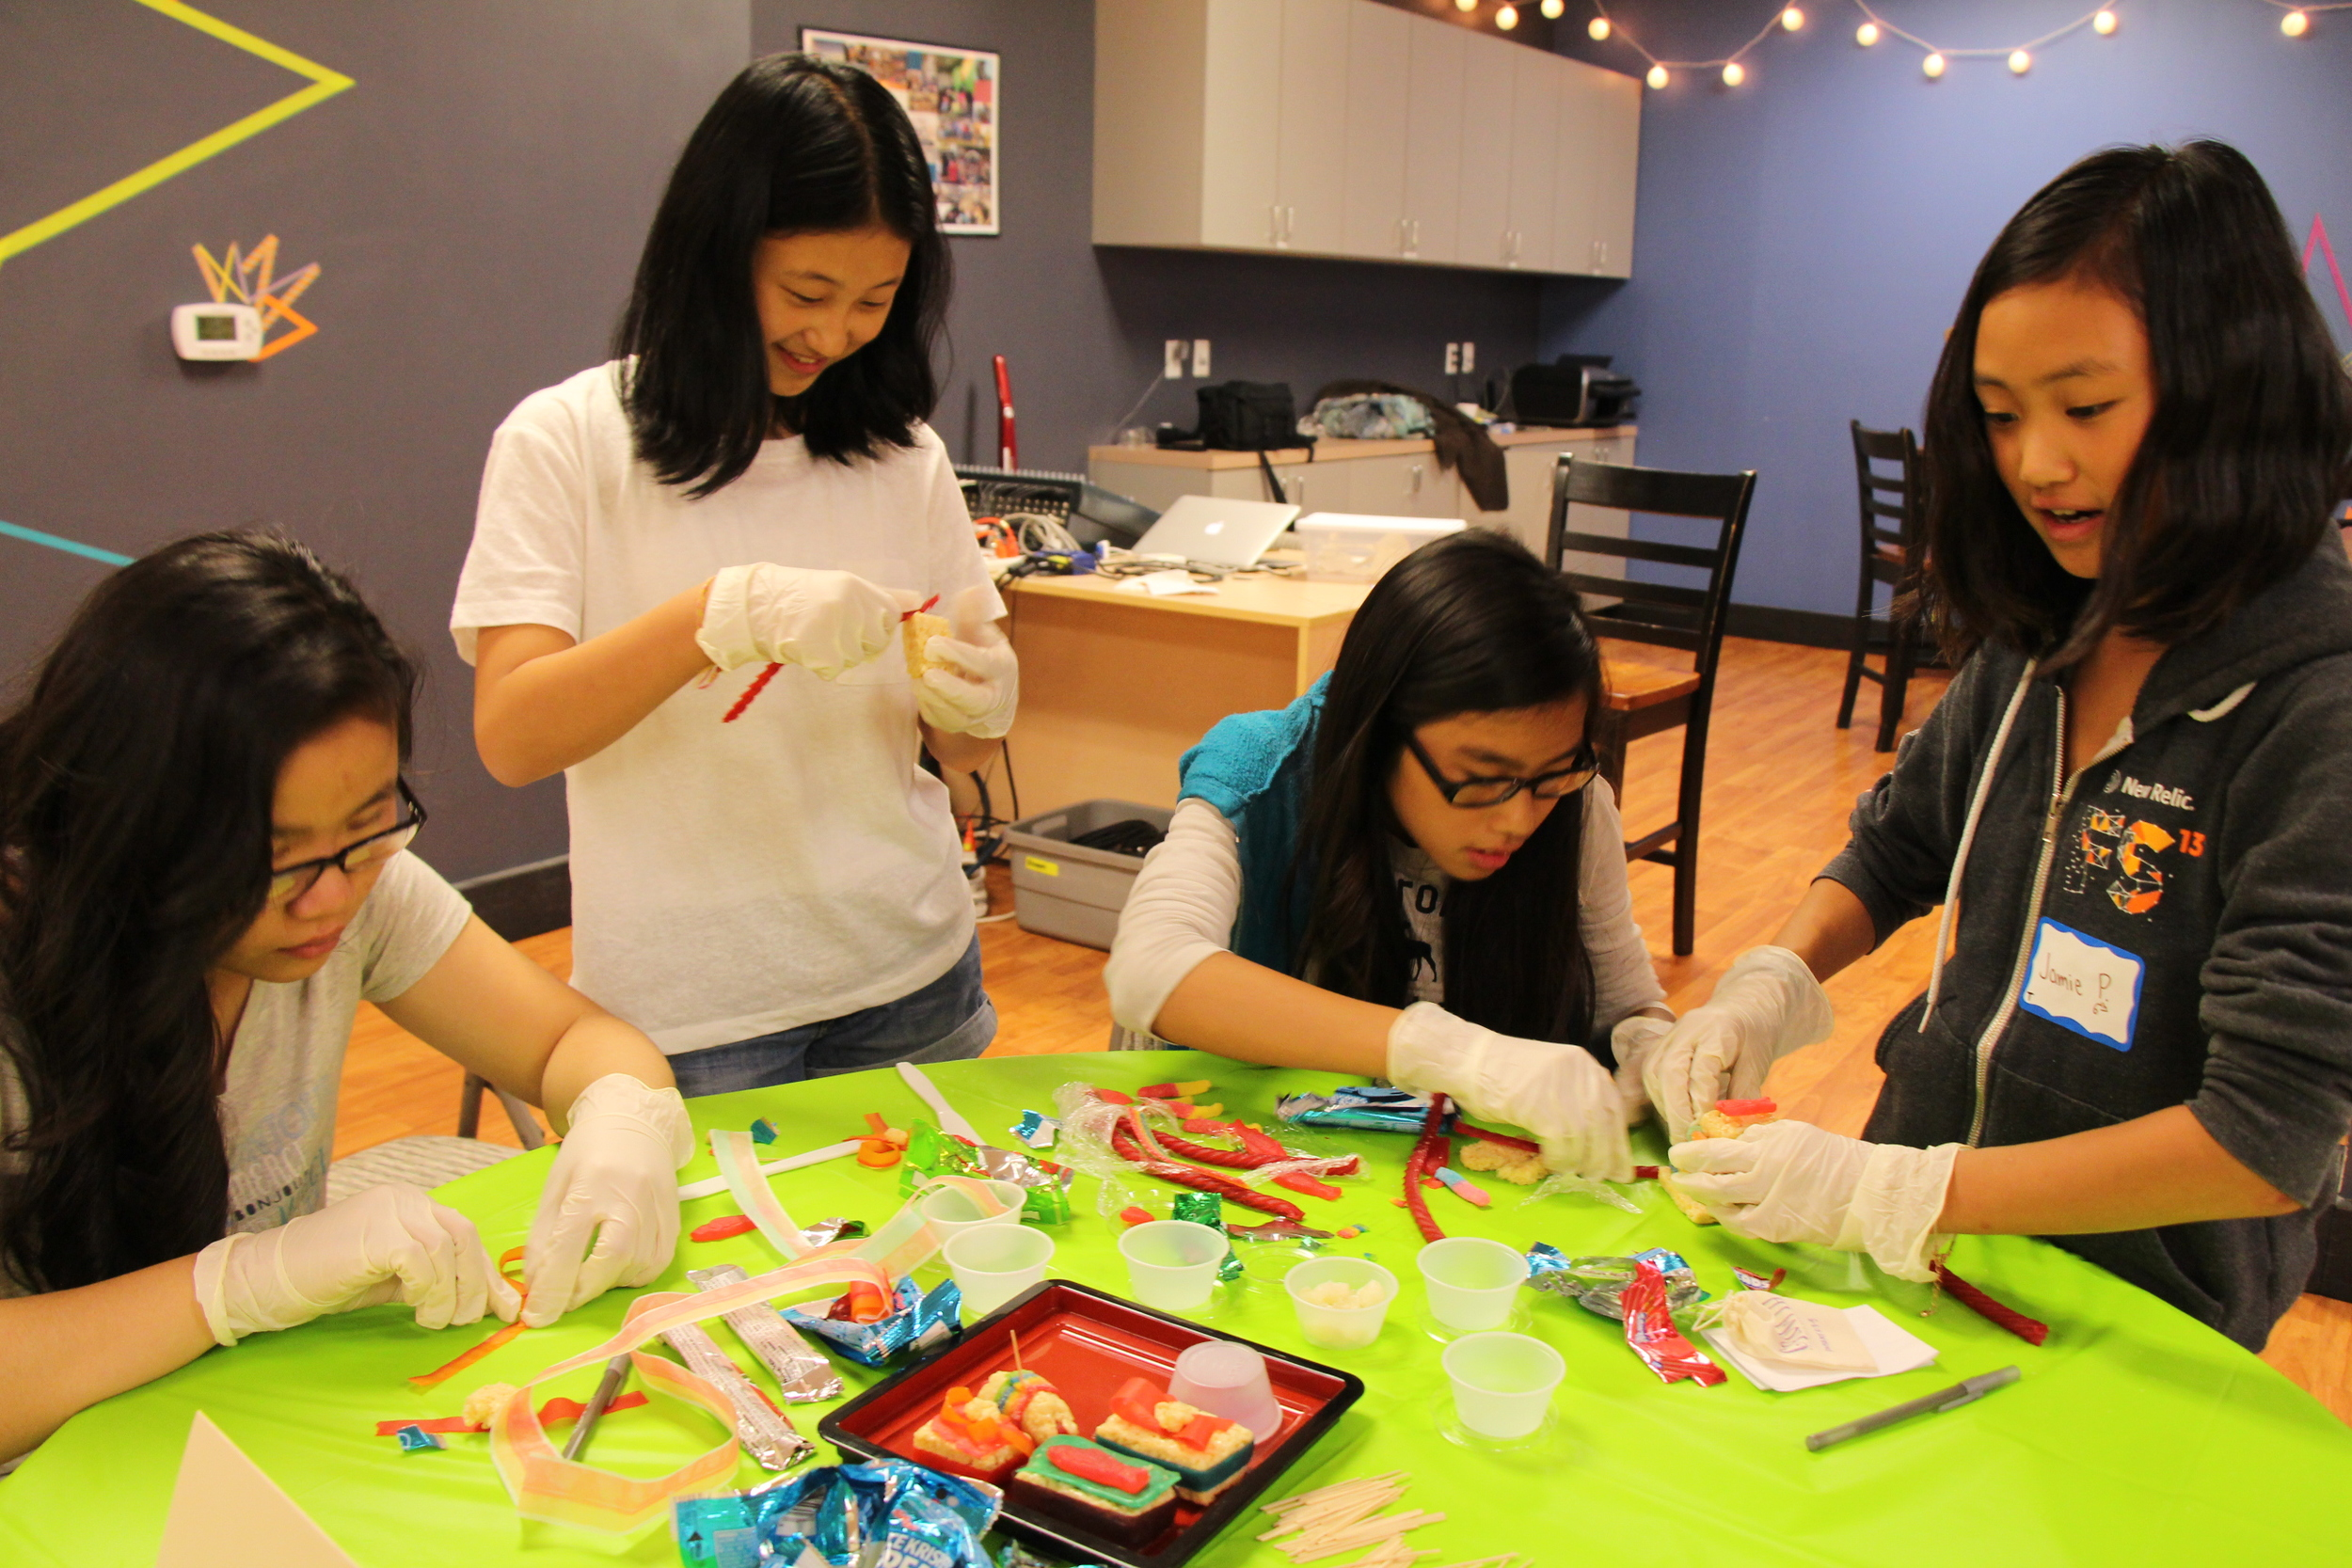 Afterwards, the girls jumped into the Iron Chef sushi competition!